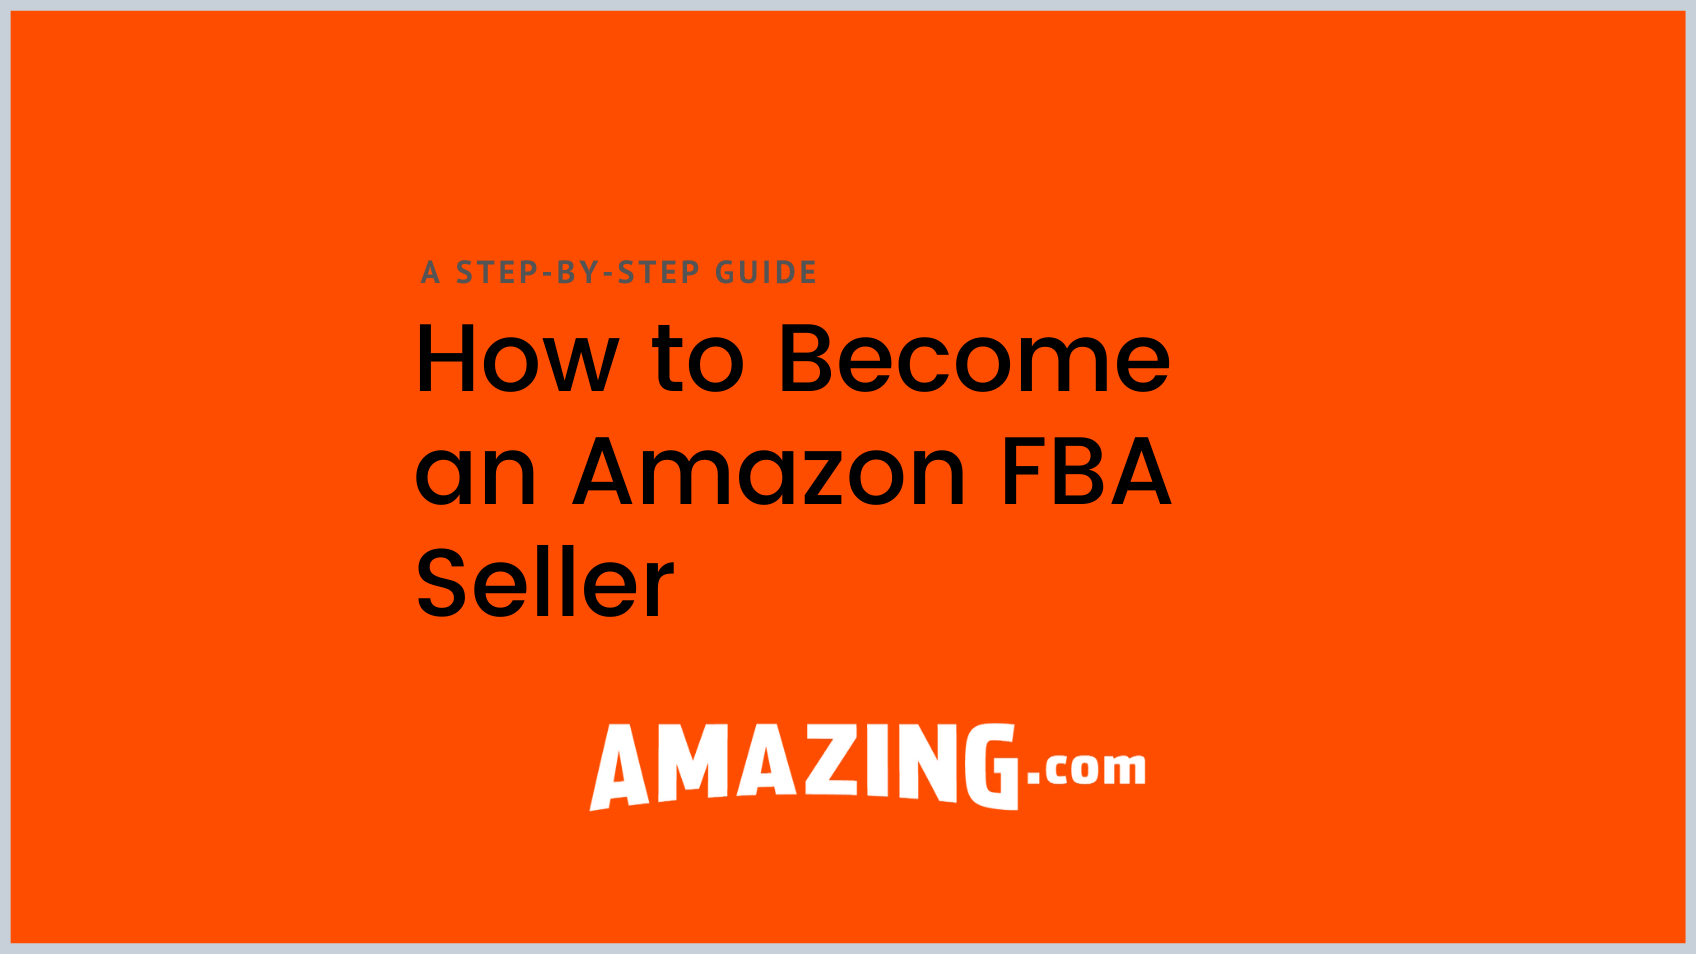 Featured image:How to Become an Amazon FBA Seller